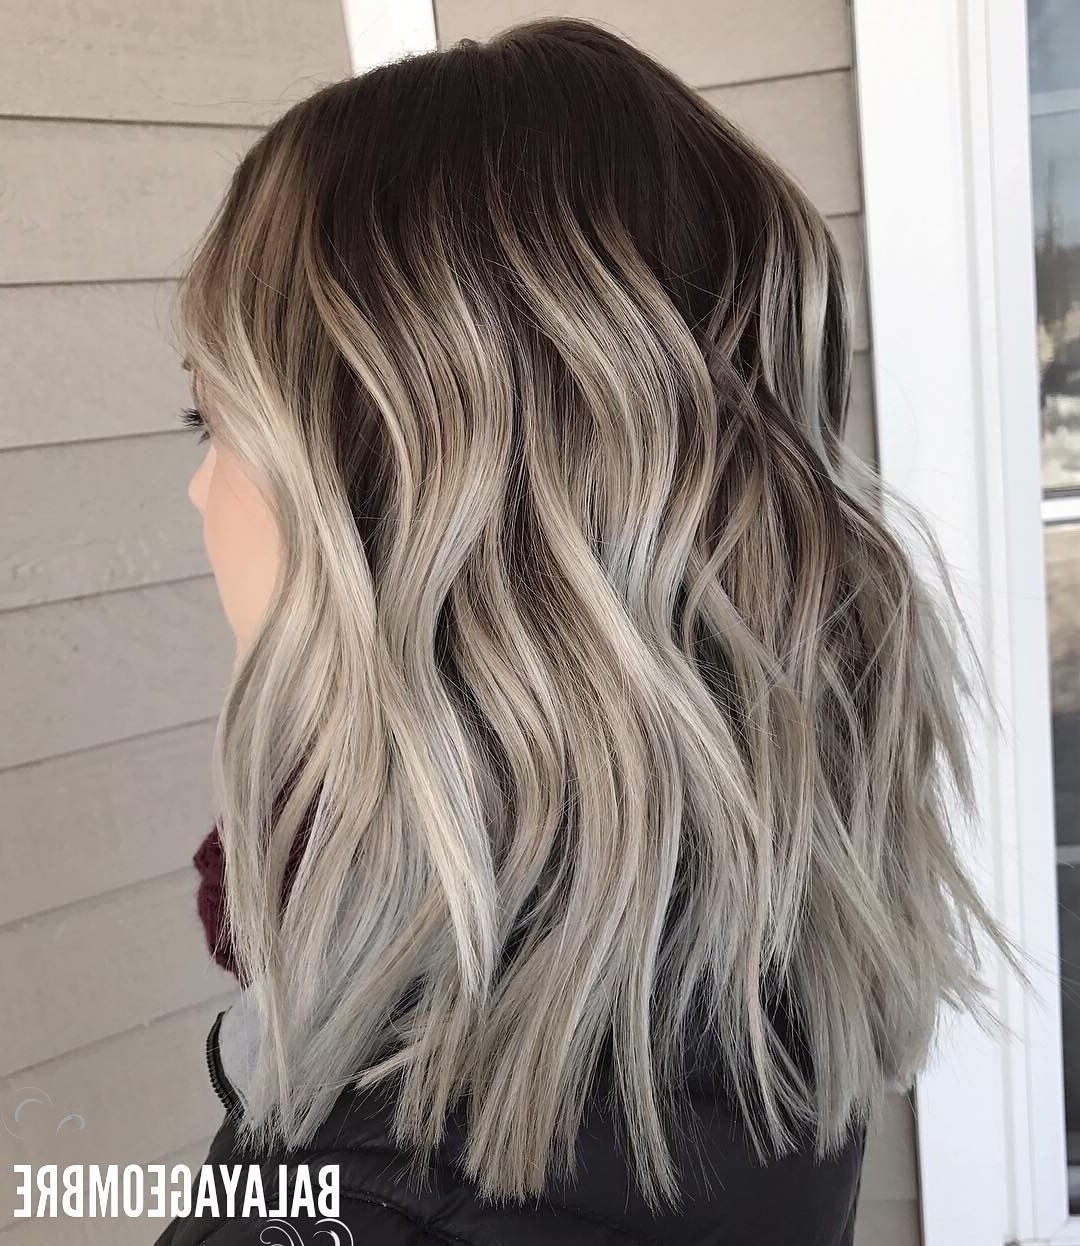 10 Best Medium Layered Hairstyles 2018 Brown & Ash Blonde Fashion Pertaining To Famous Pastel And Ash Pixie Hairstyles With Fused Layers (View 1 of 20)